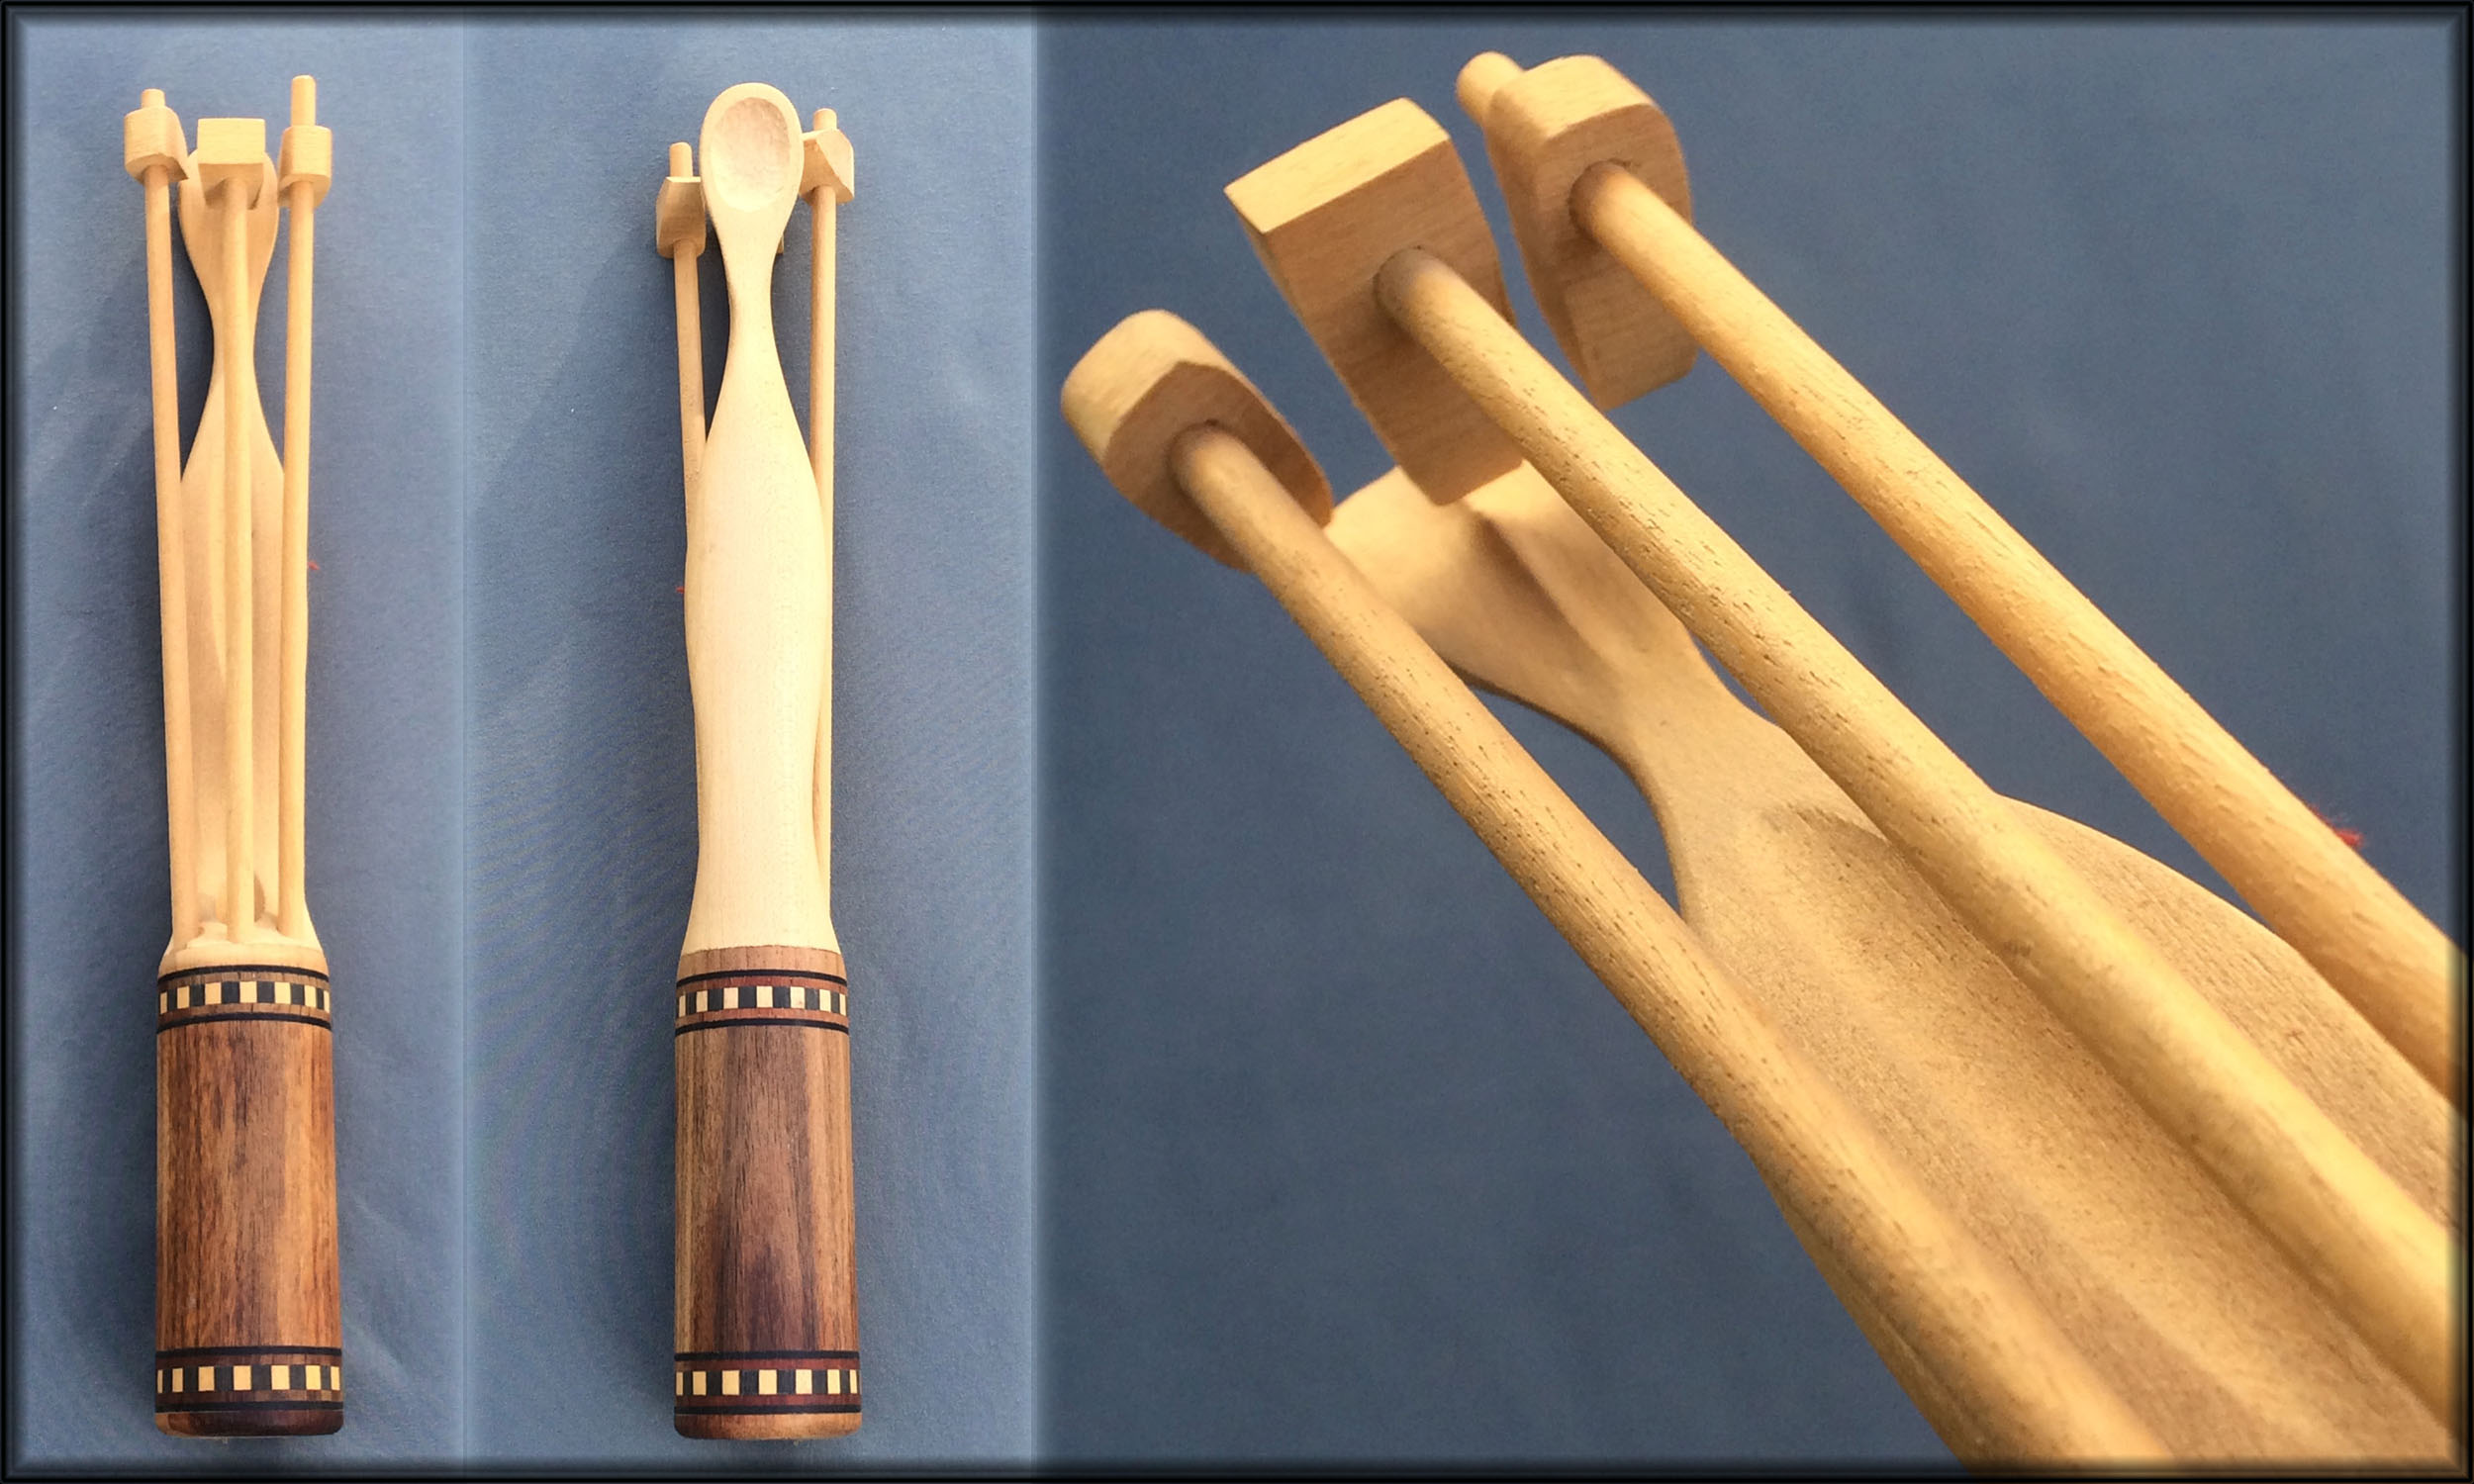 Tripple , Tripple hammers on one spoon built from a pool cue. Thats when you have tried everything.